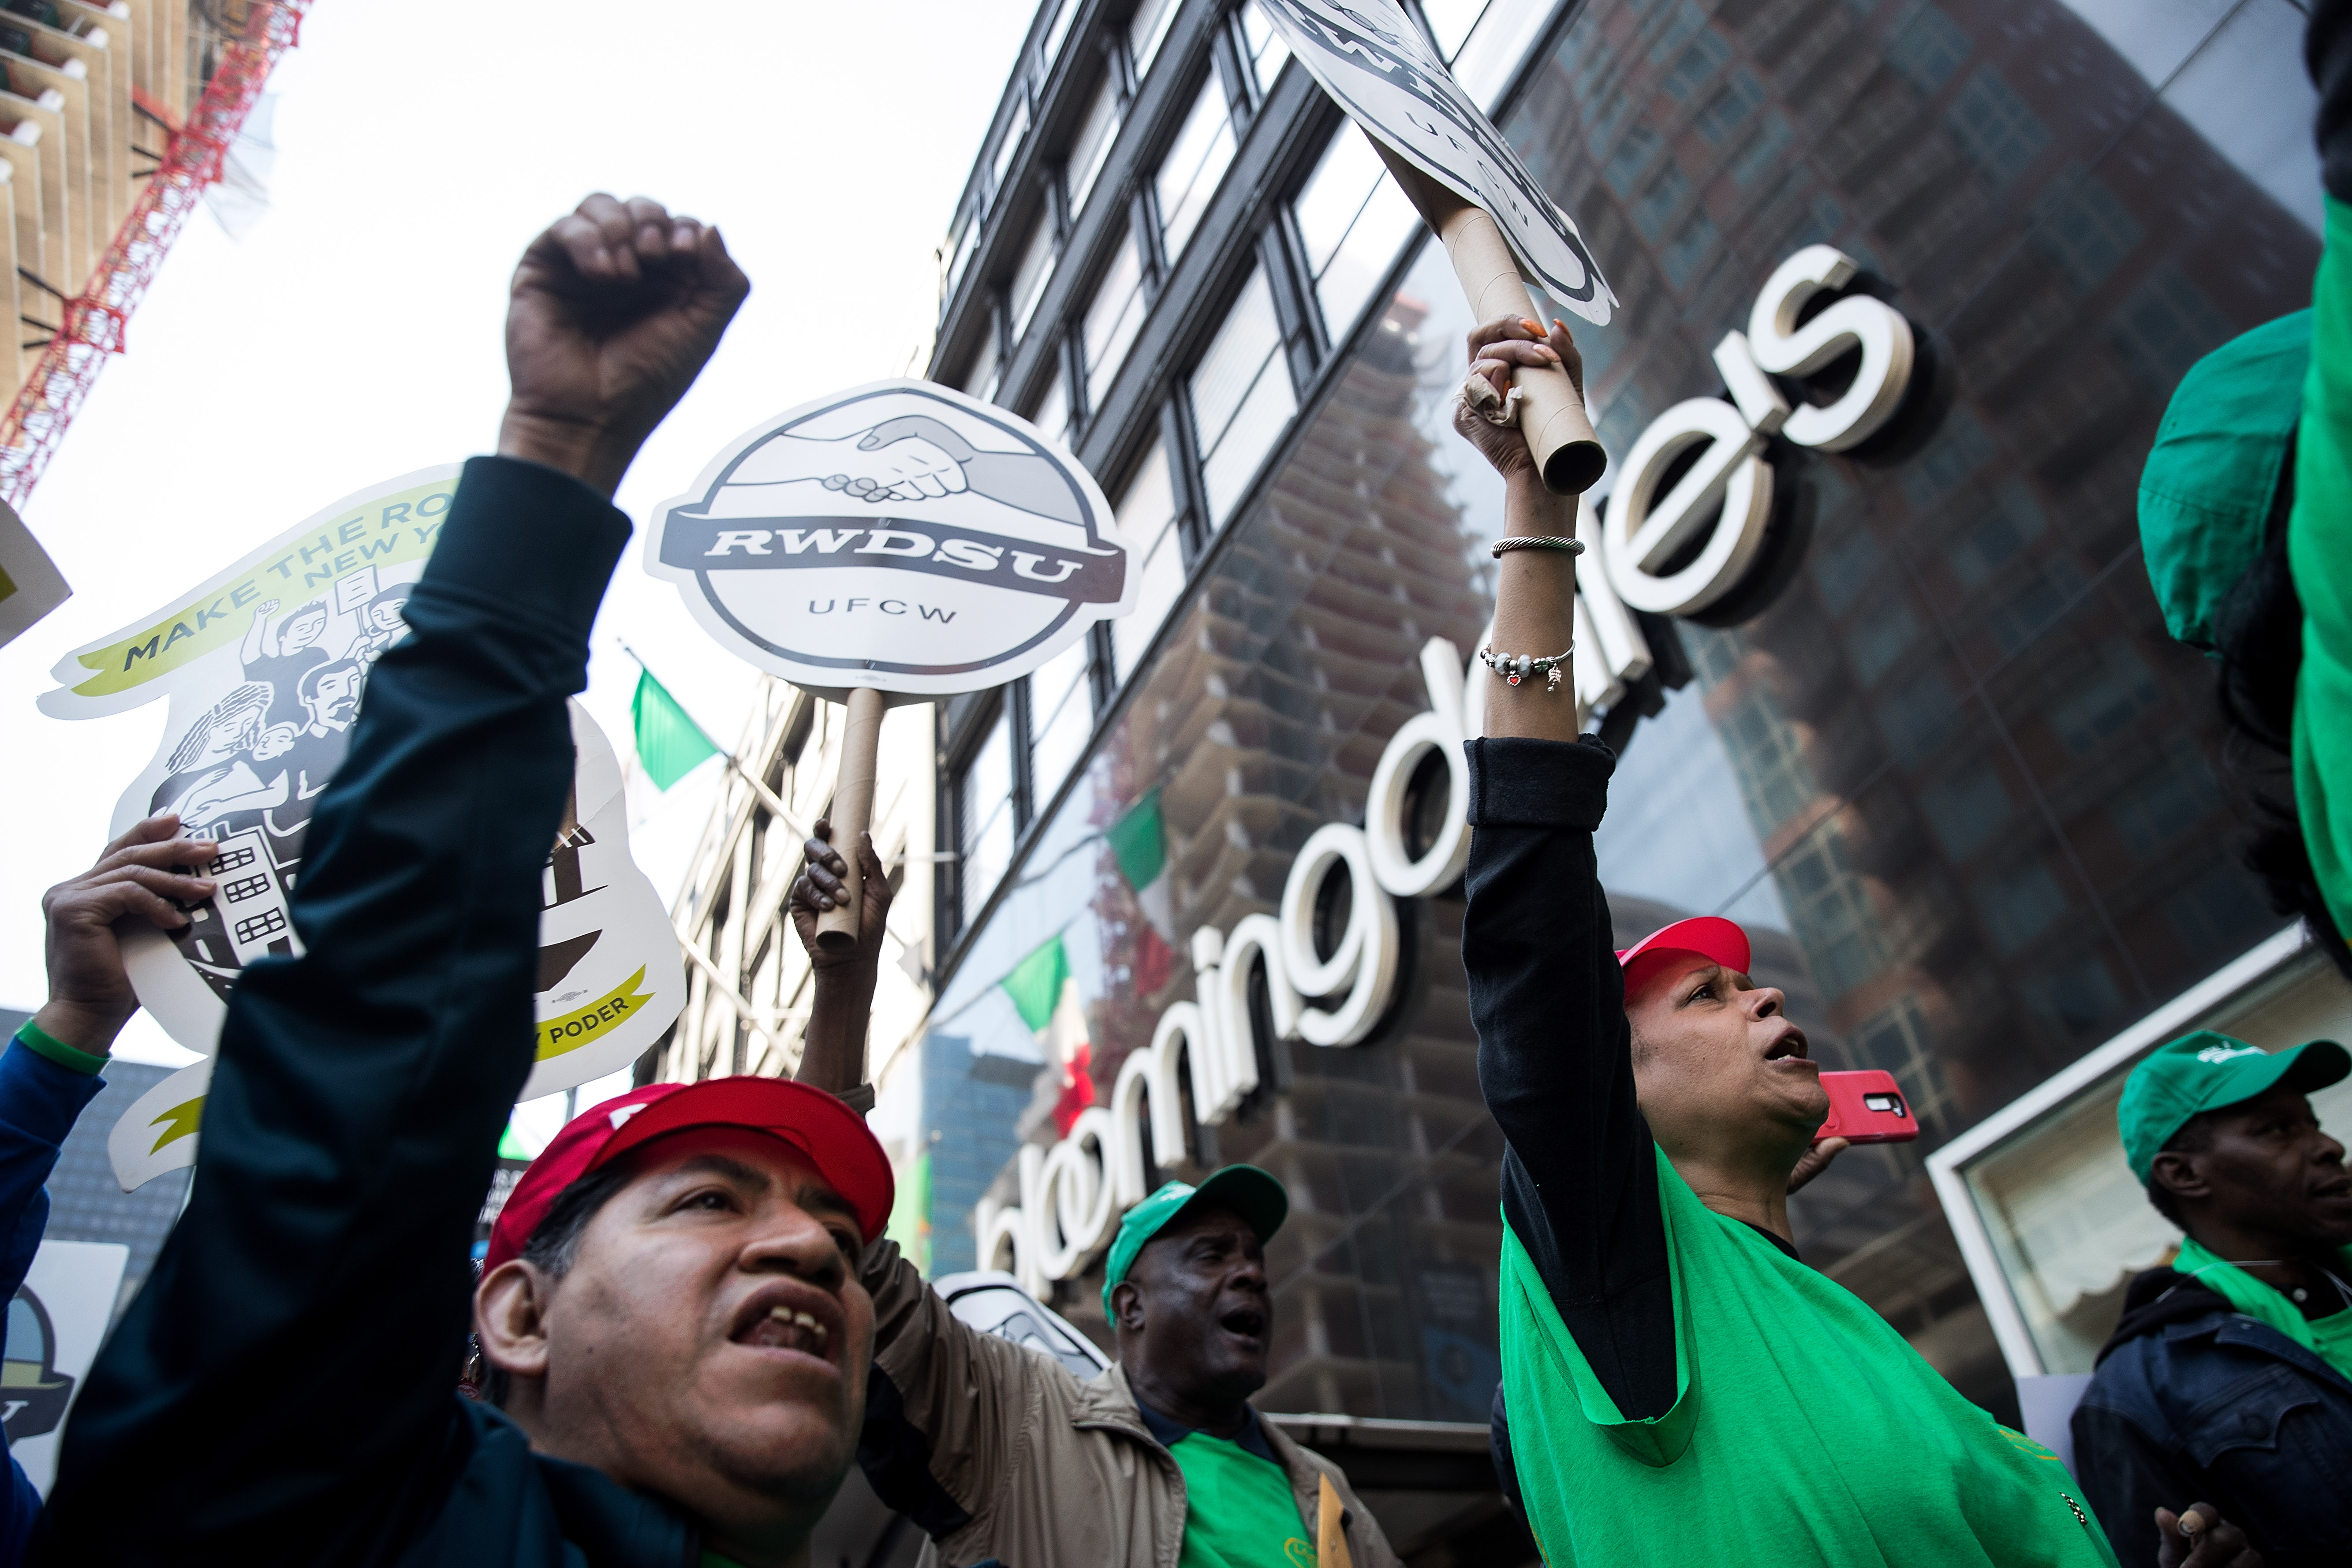 An April 2017 rally held by unionized Bloomindale's workers in New York City in April. Workers hold signs and pump their fists outside the store flagship.